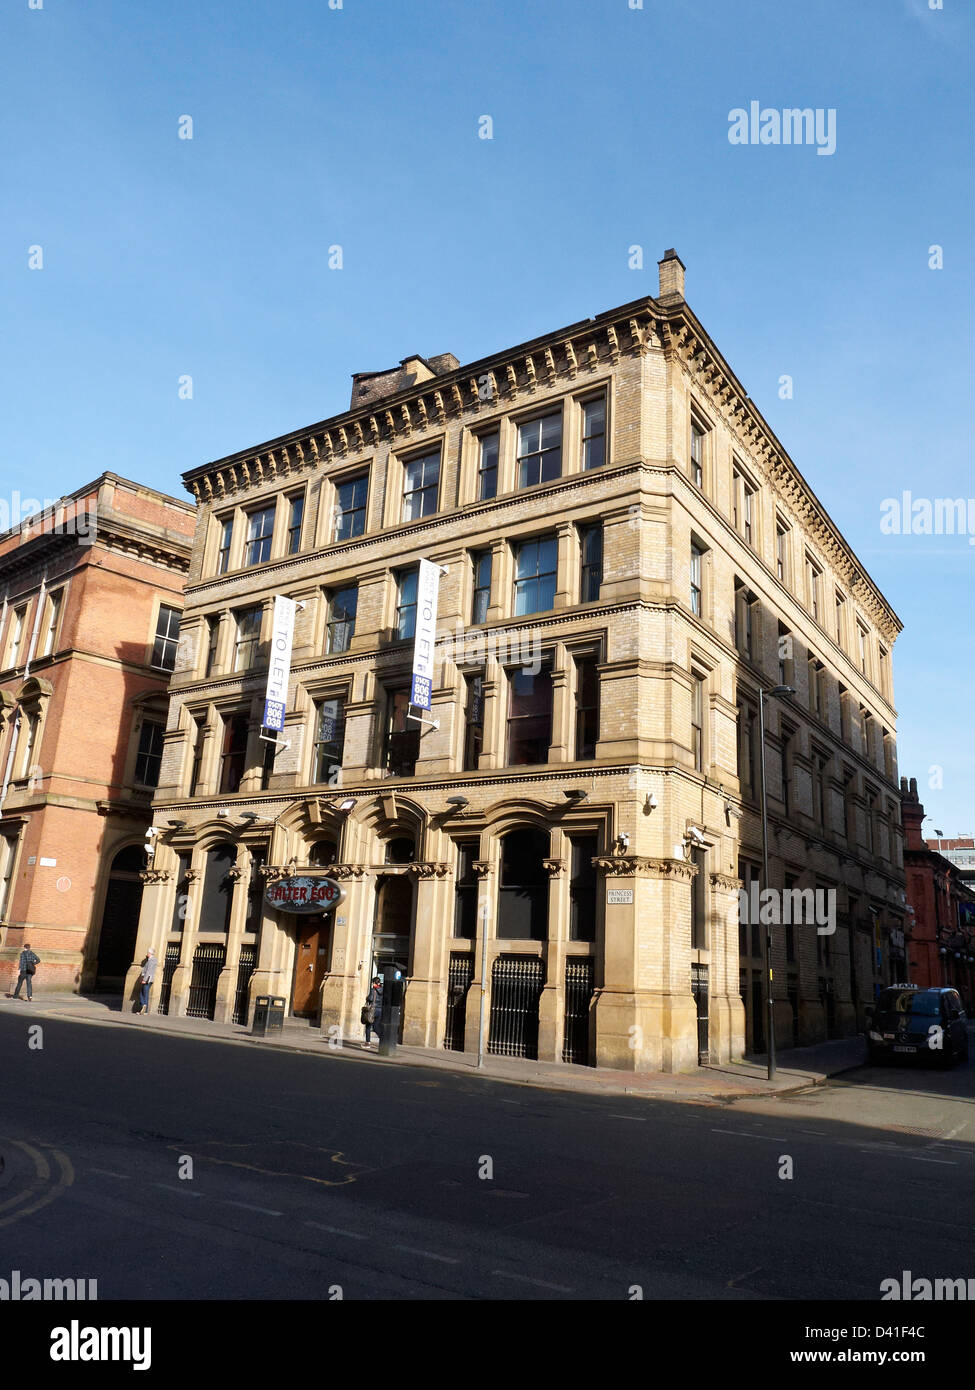 105-107 Princess Street Manchester UK - Stock Image